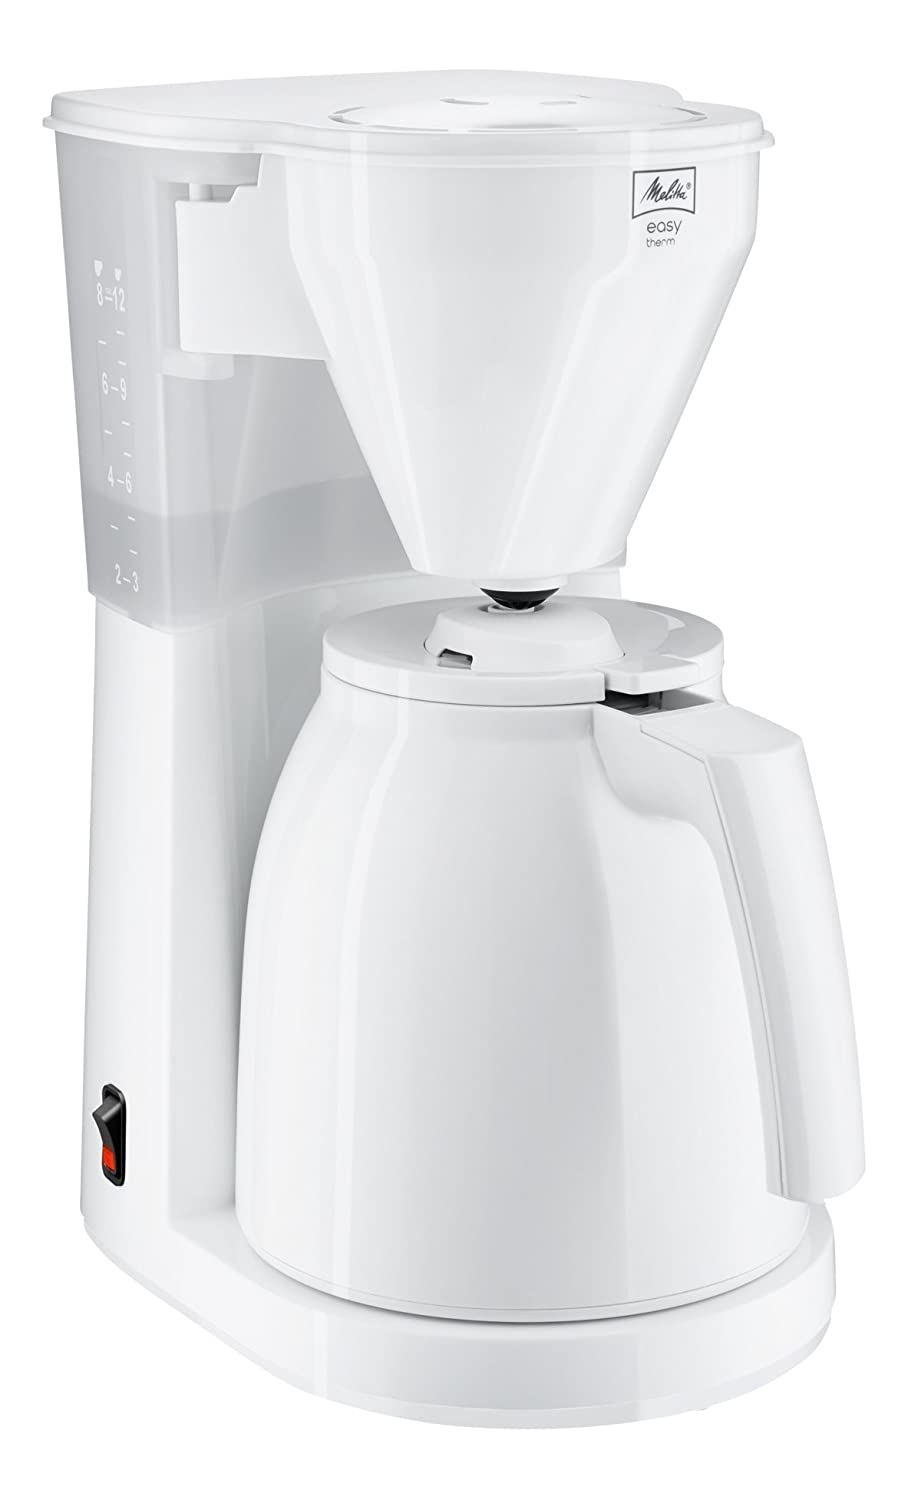 Melitta Easy Therm, 1010-06, Filter Coffee Machine with Insulated Jug, Black